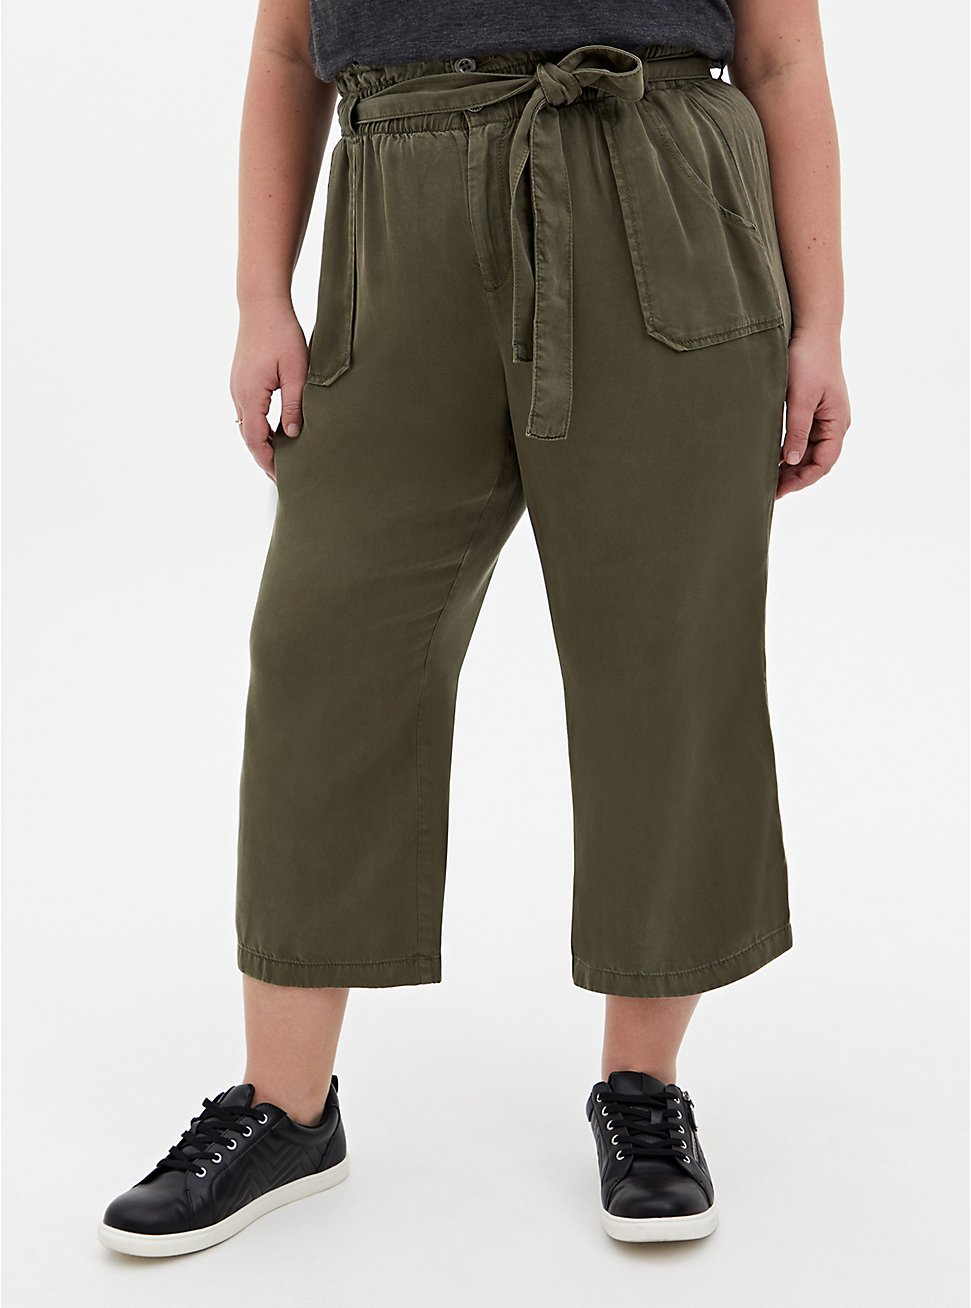 Olive Green Tencel Utility Pant, ARMY GREEN, hi-res